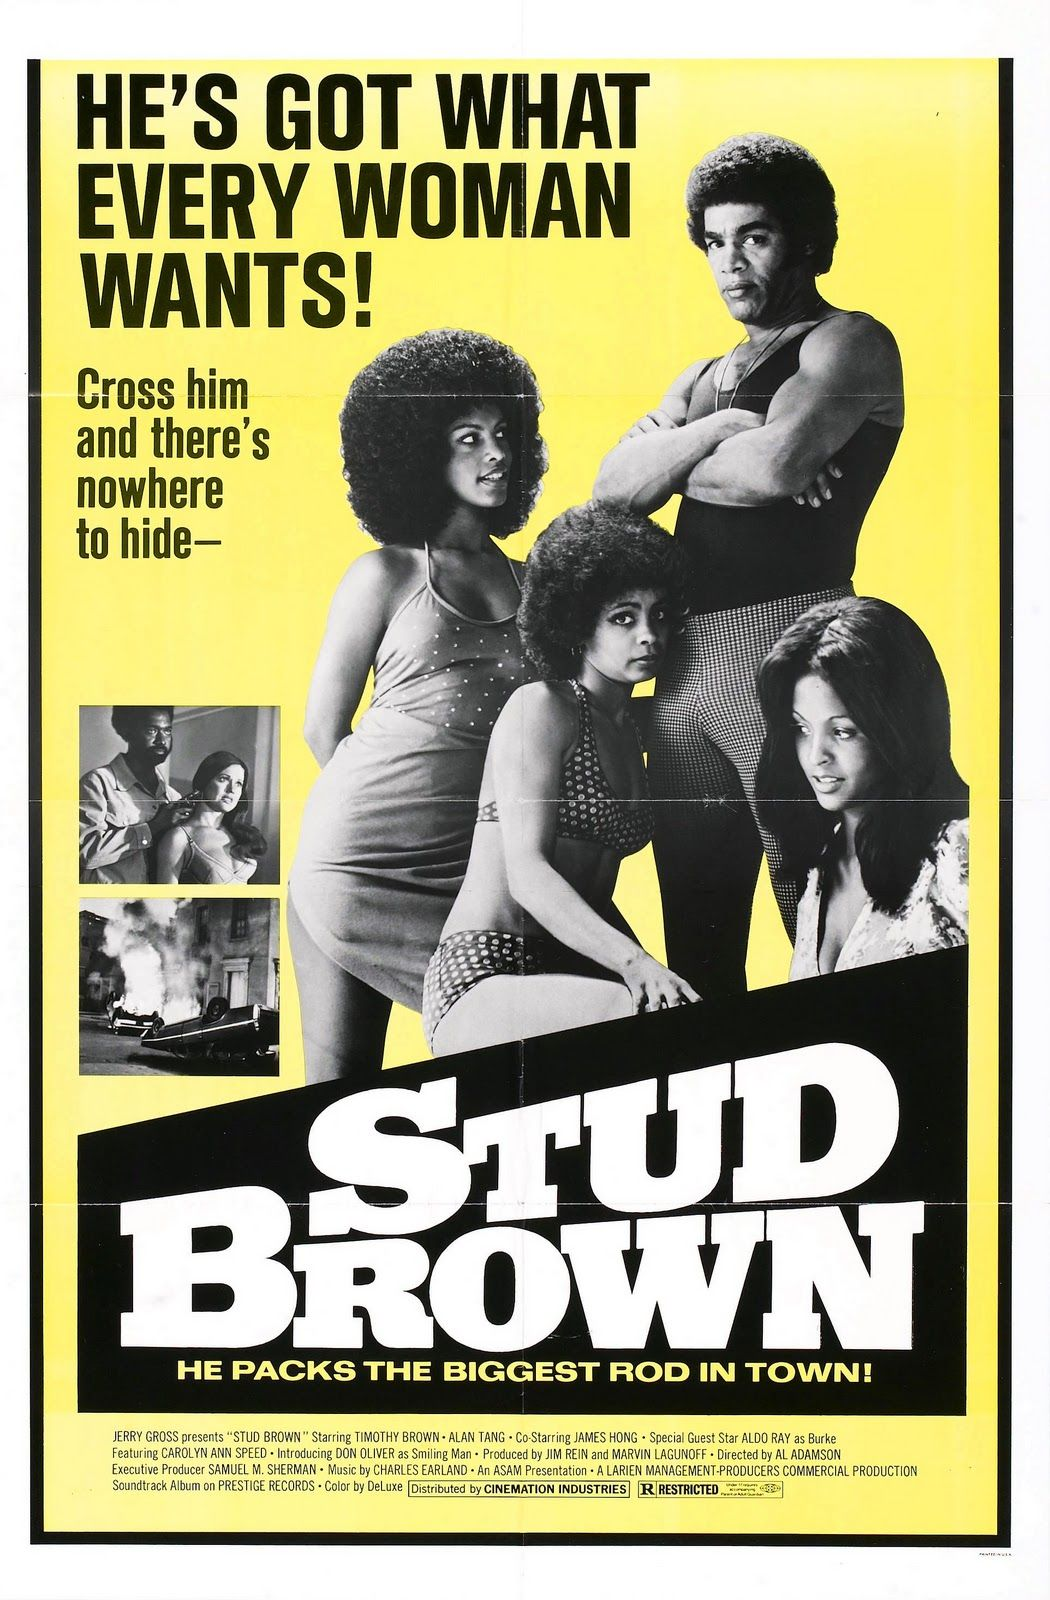 Stud Brown #Movie #Blaxploitation #70s #Poster #Exploitation